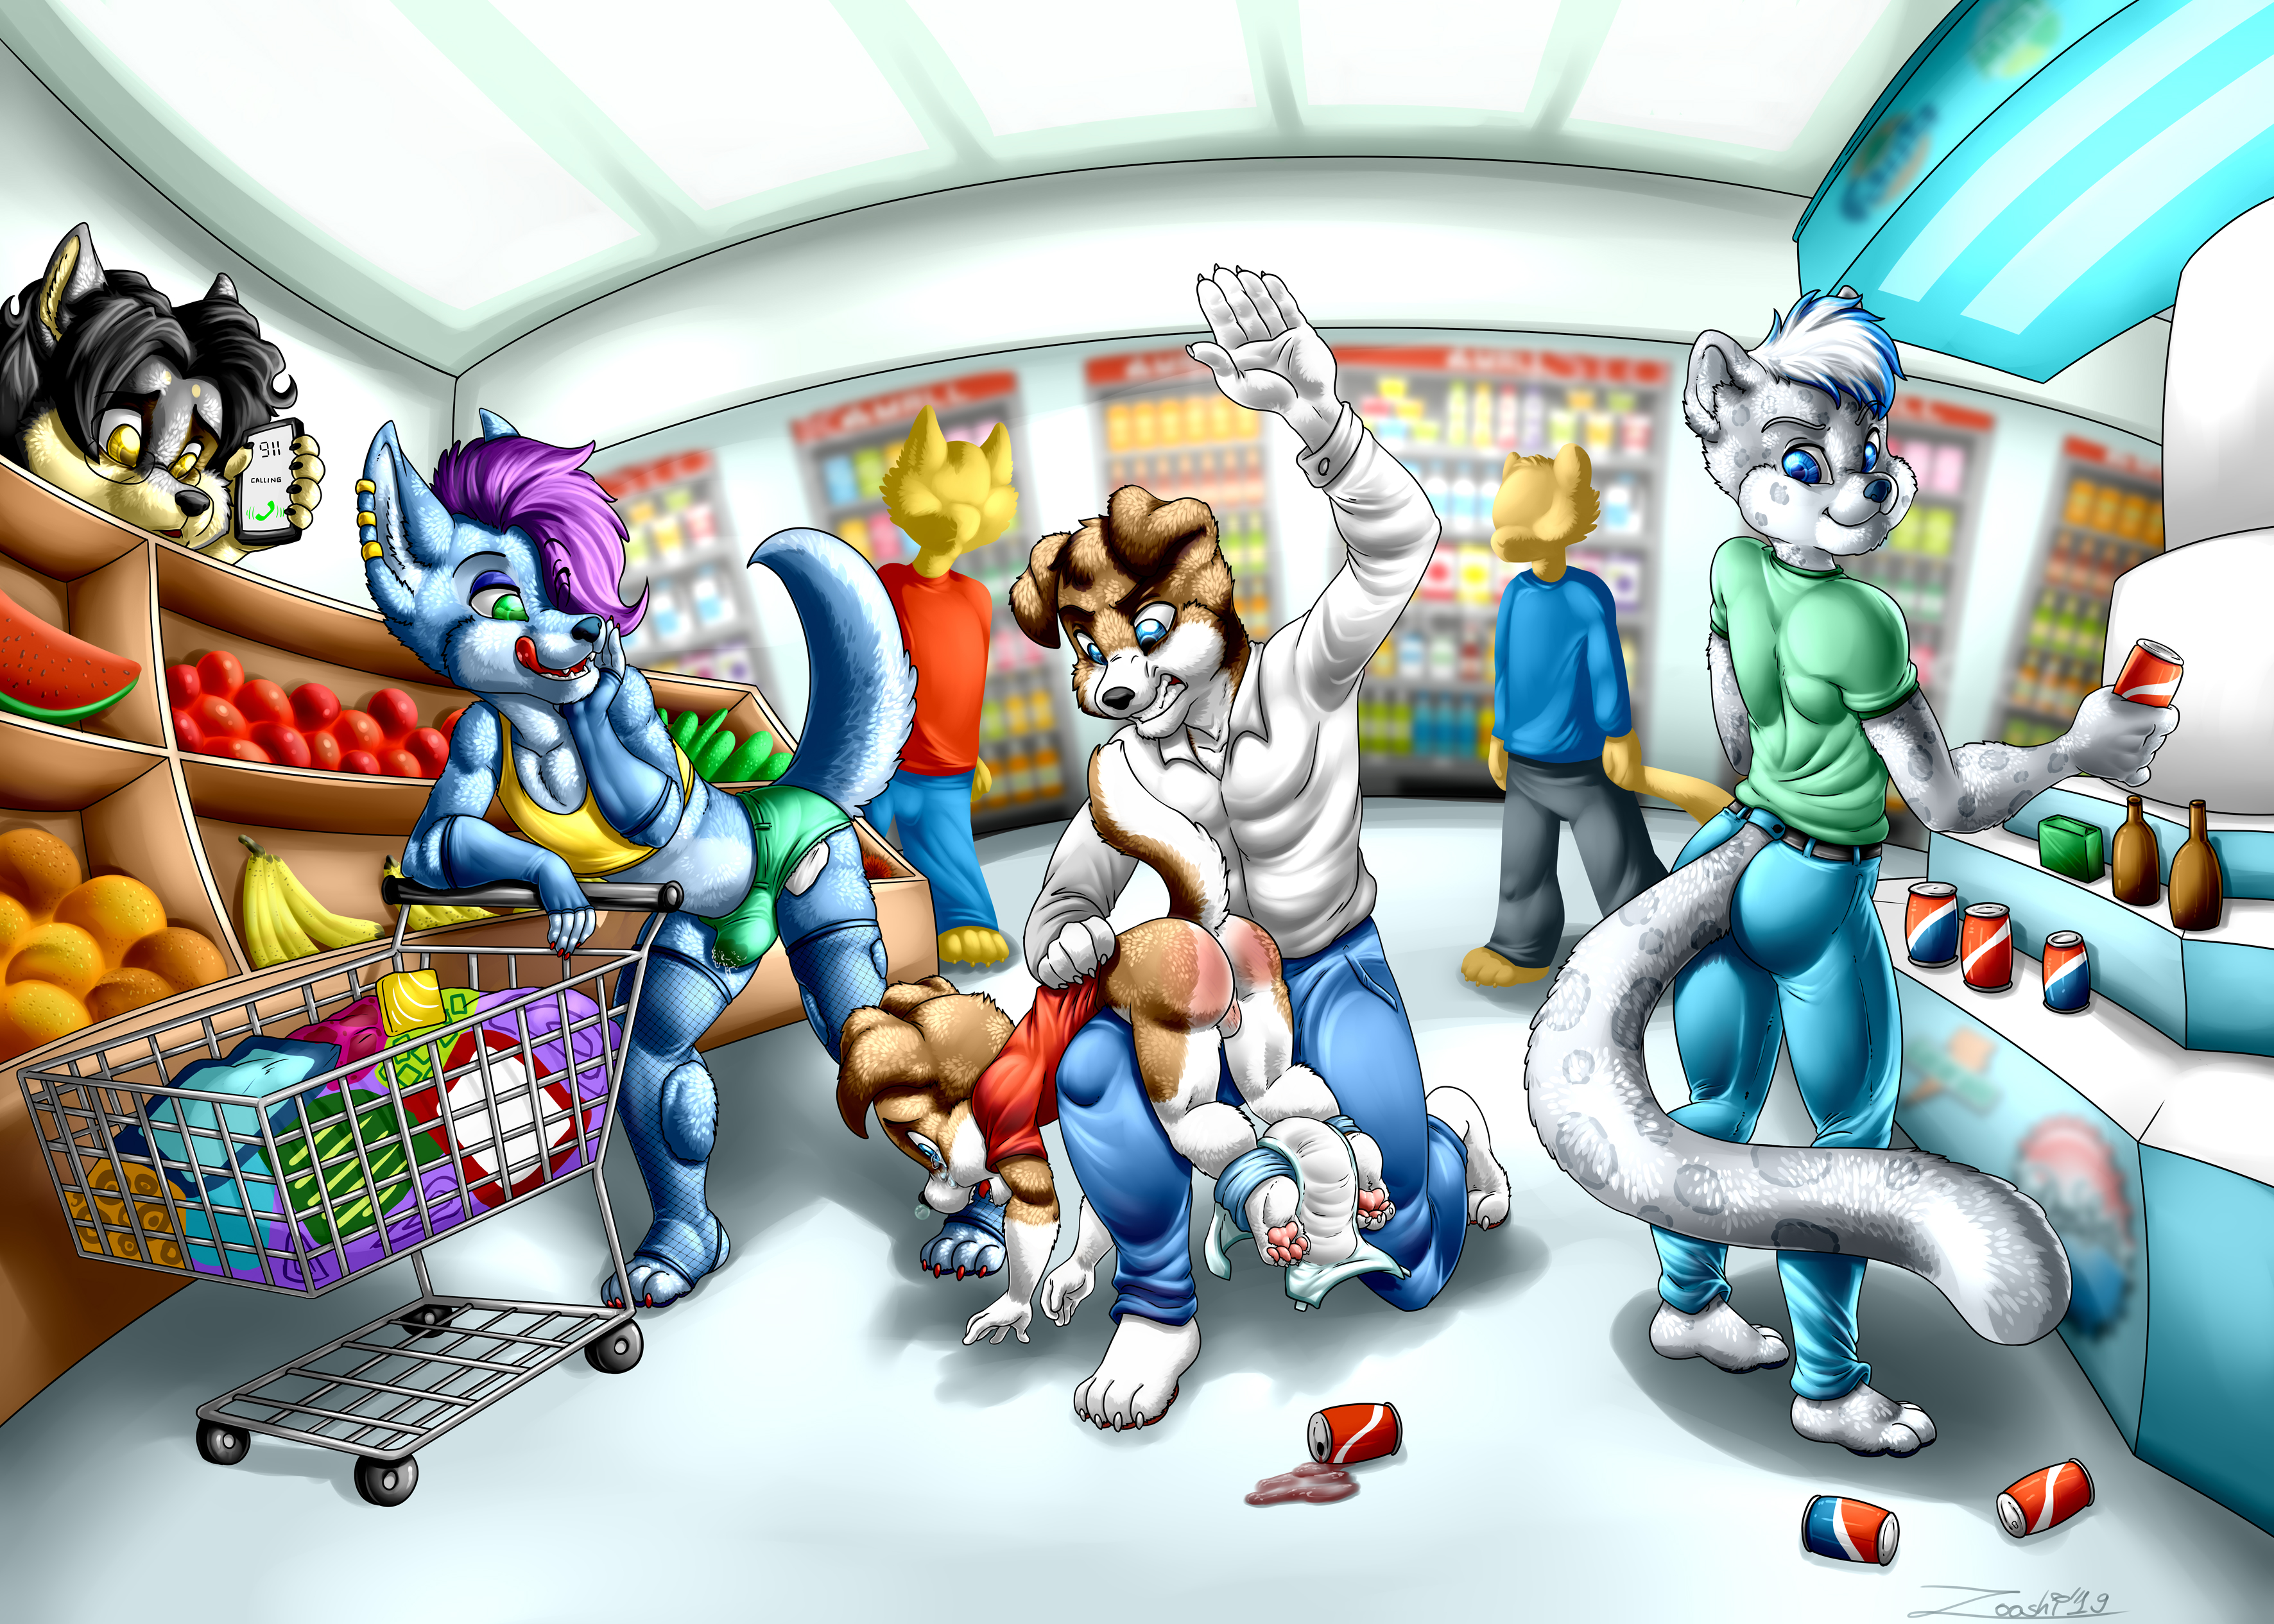 2727579_zooshi_grocery_store_final-ink